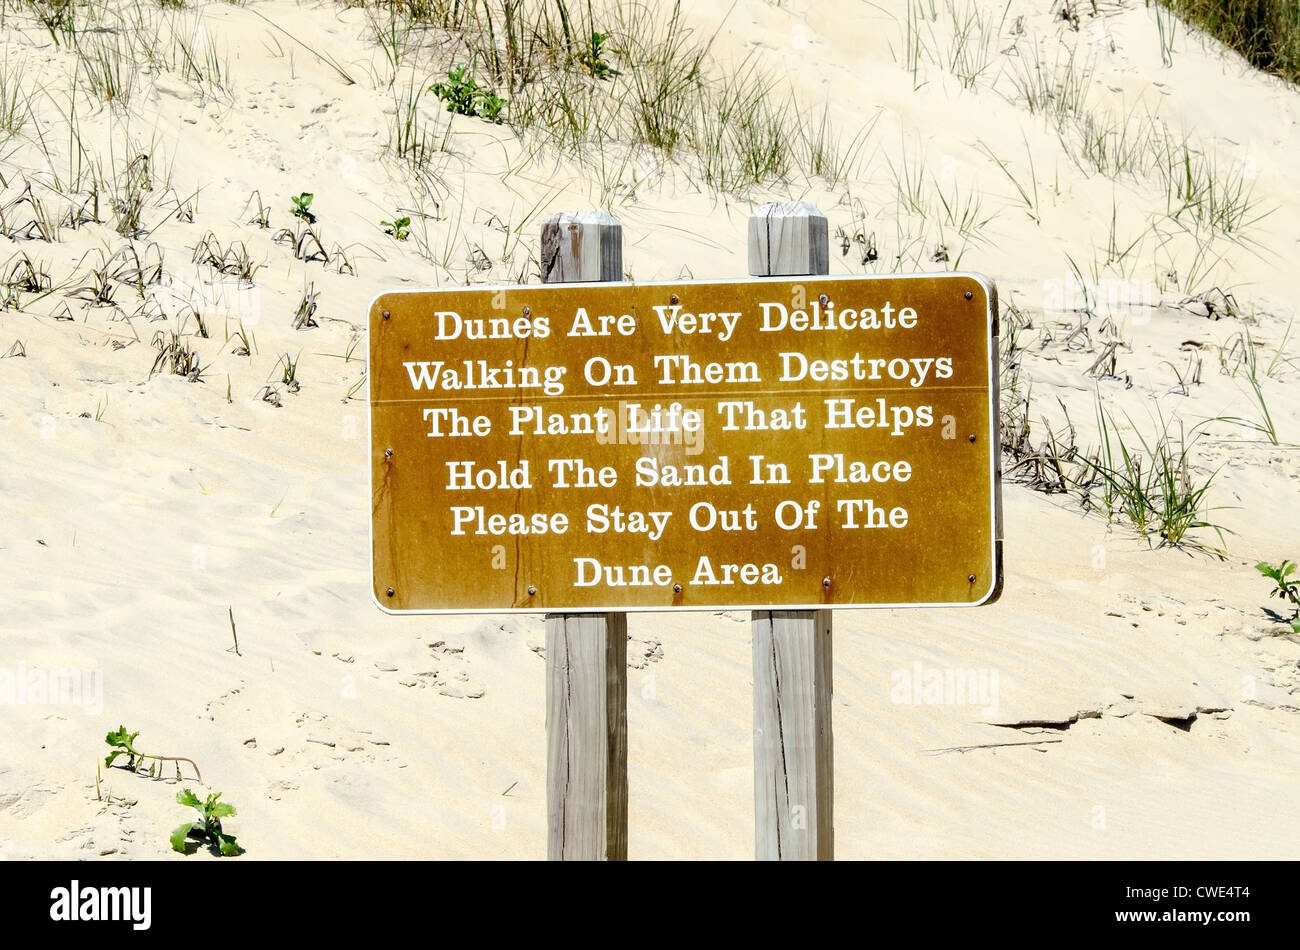 Sand dune warning sign 'stay away stay out' Currituck County, Outer Banks, North Carolina - Stock Image